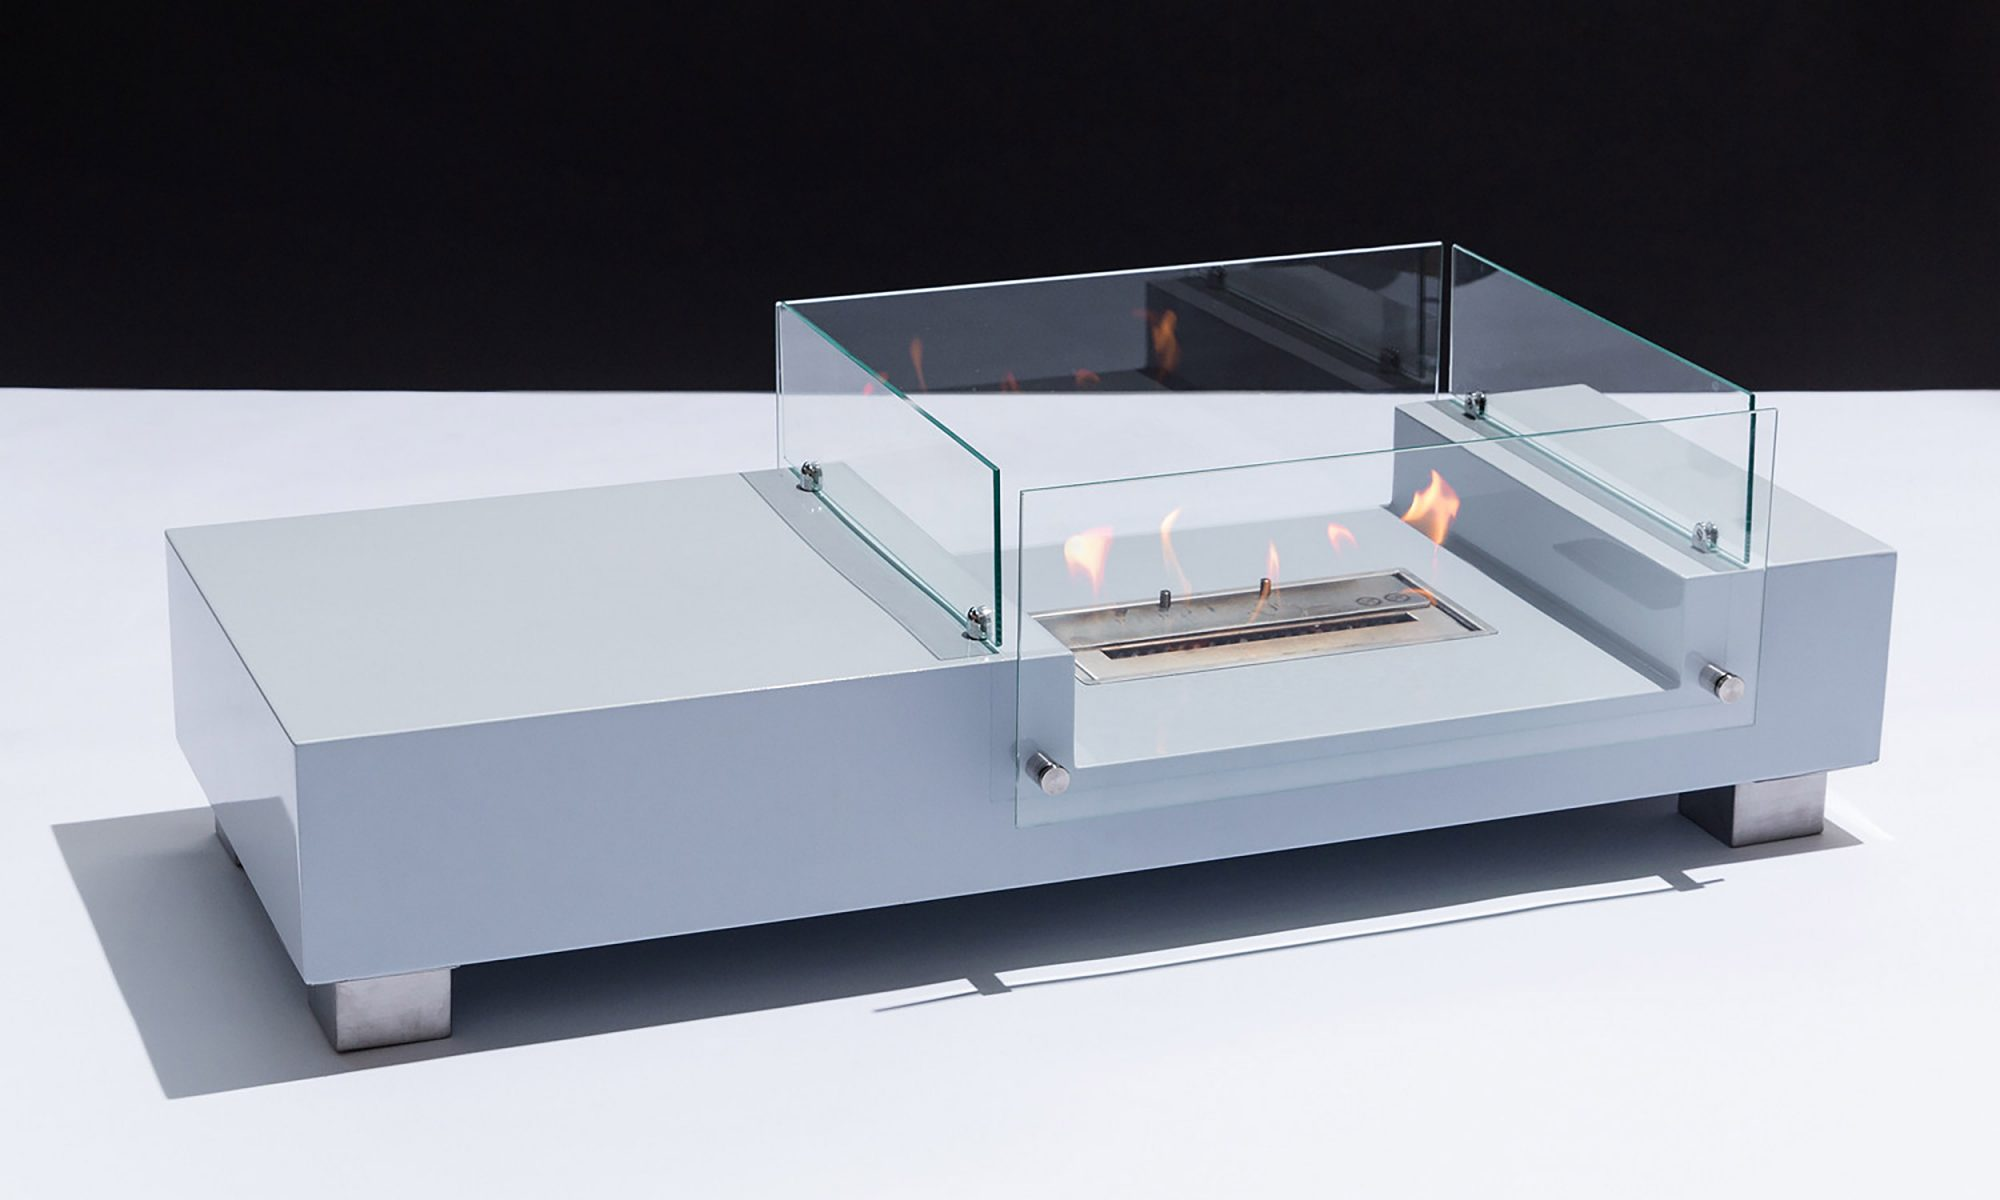 EC: This Fireplace Coffee Table Will Make Winter Mornings More Bearable